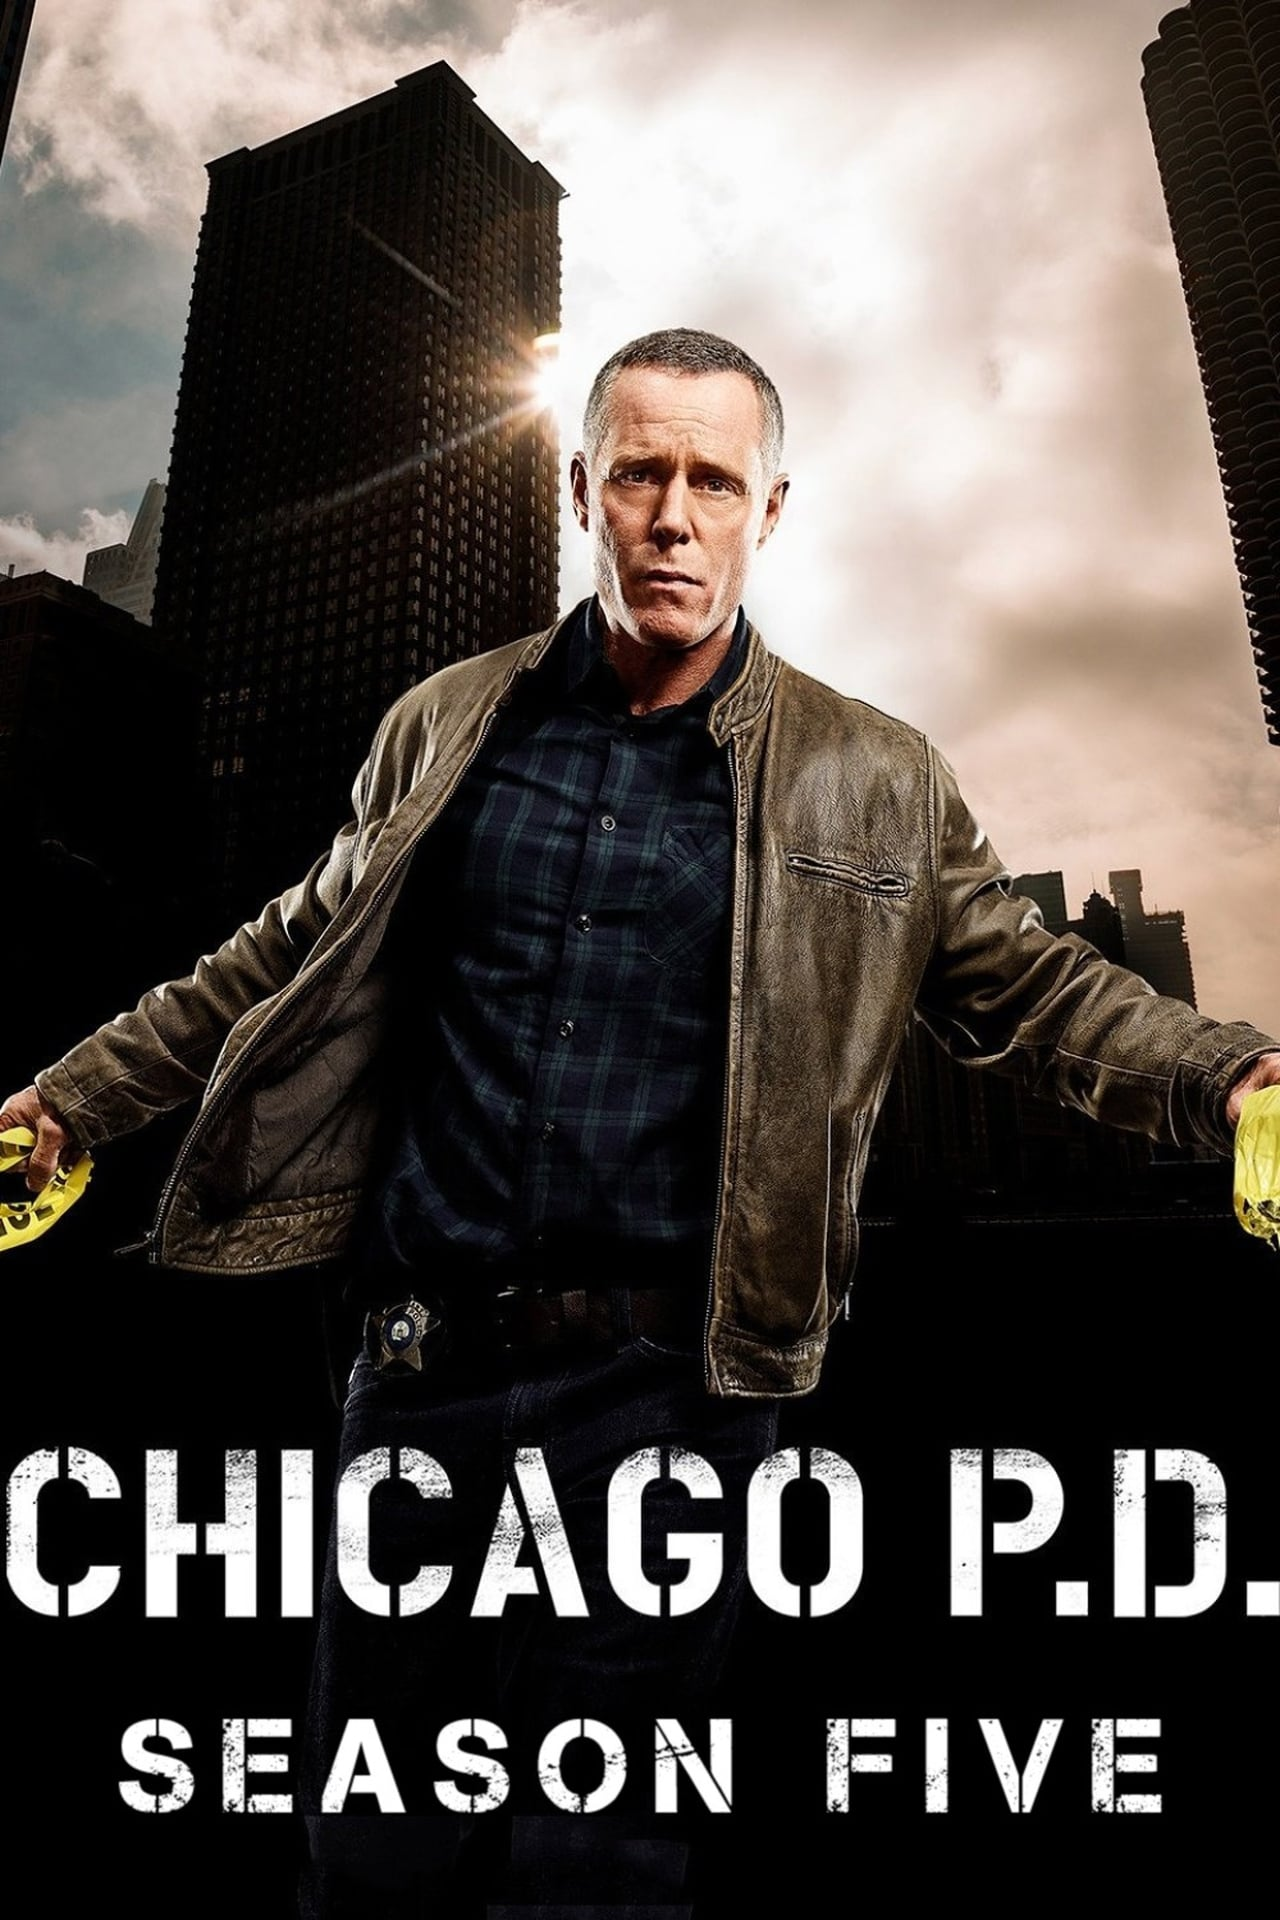 Chicago P.d. Season 5 (2017) putlockers cafe